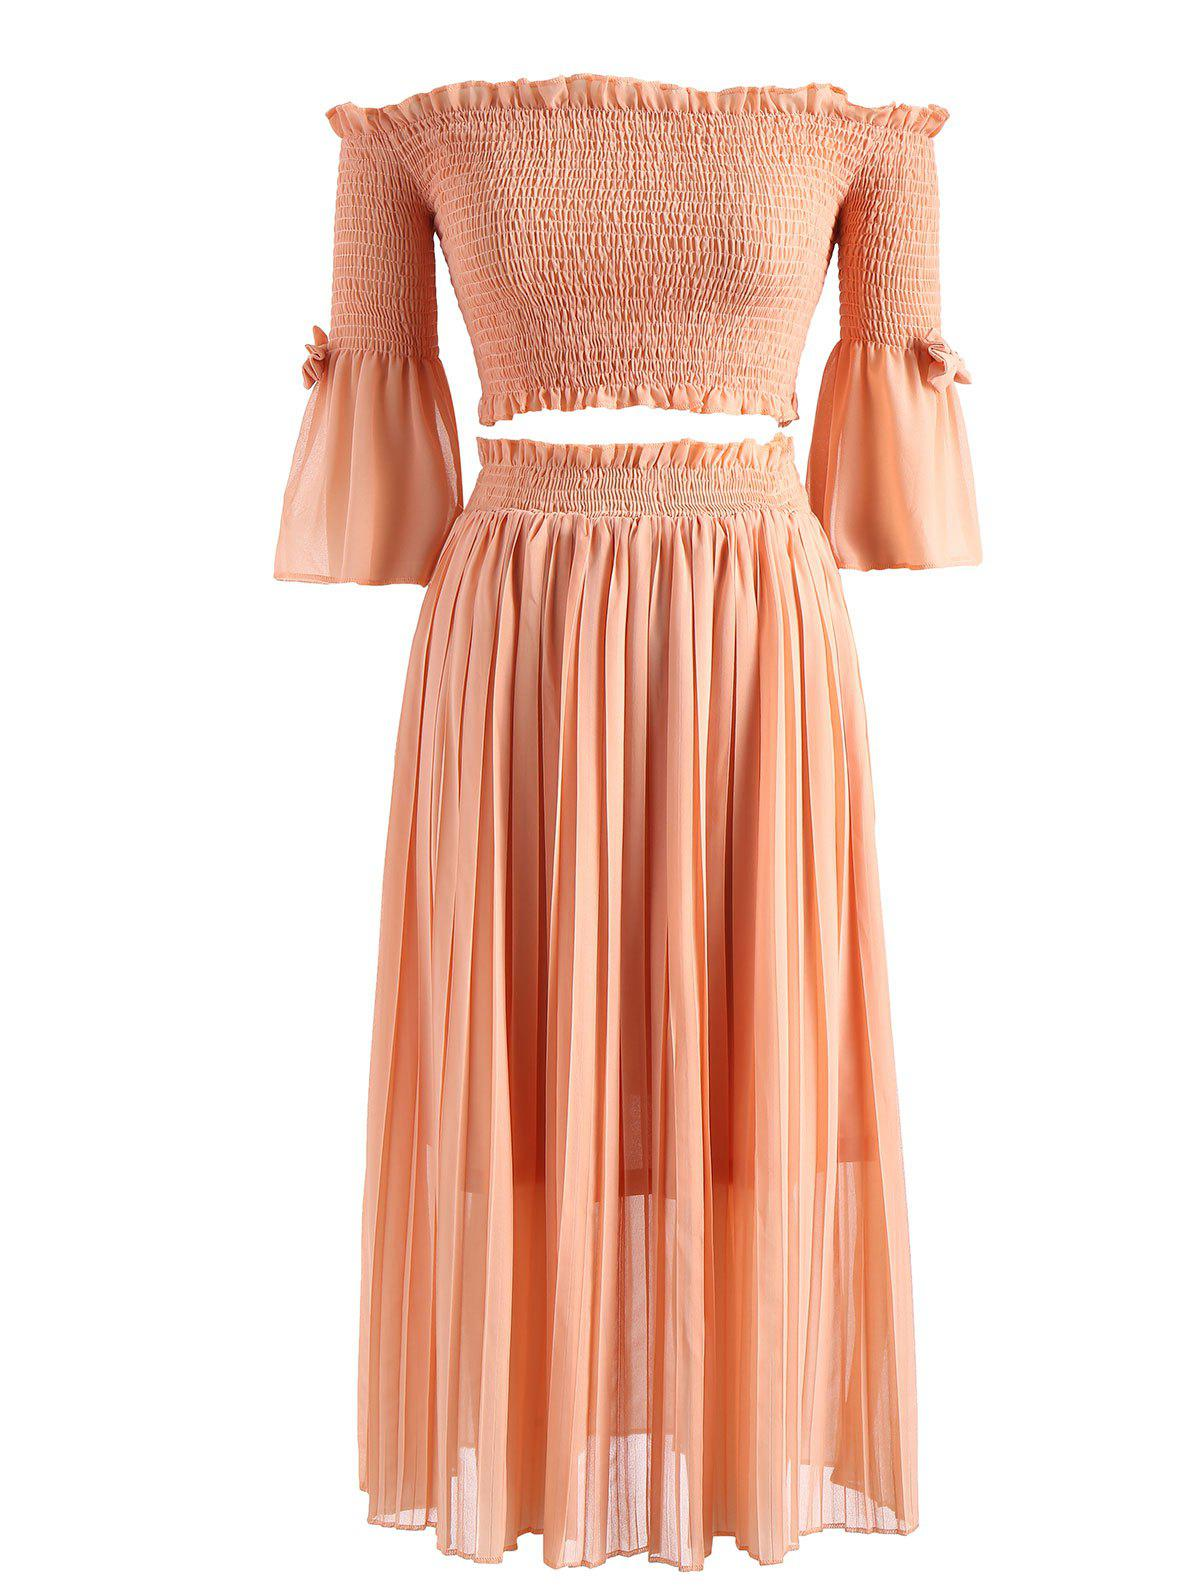 Smocked Top with Pleated Skirt 284073802